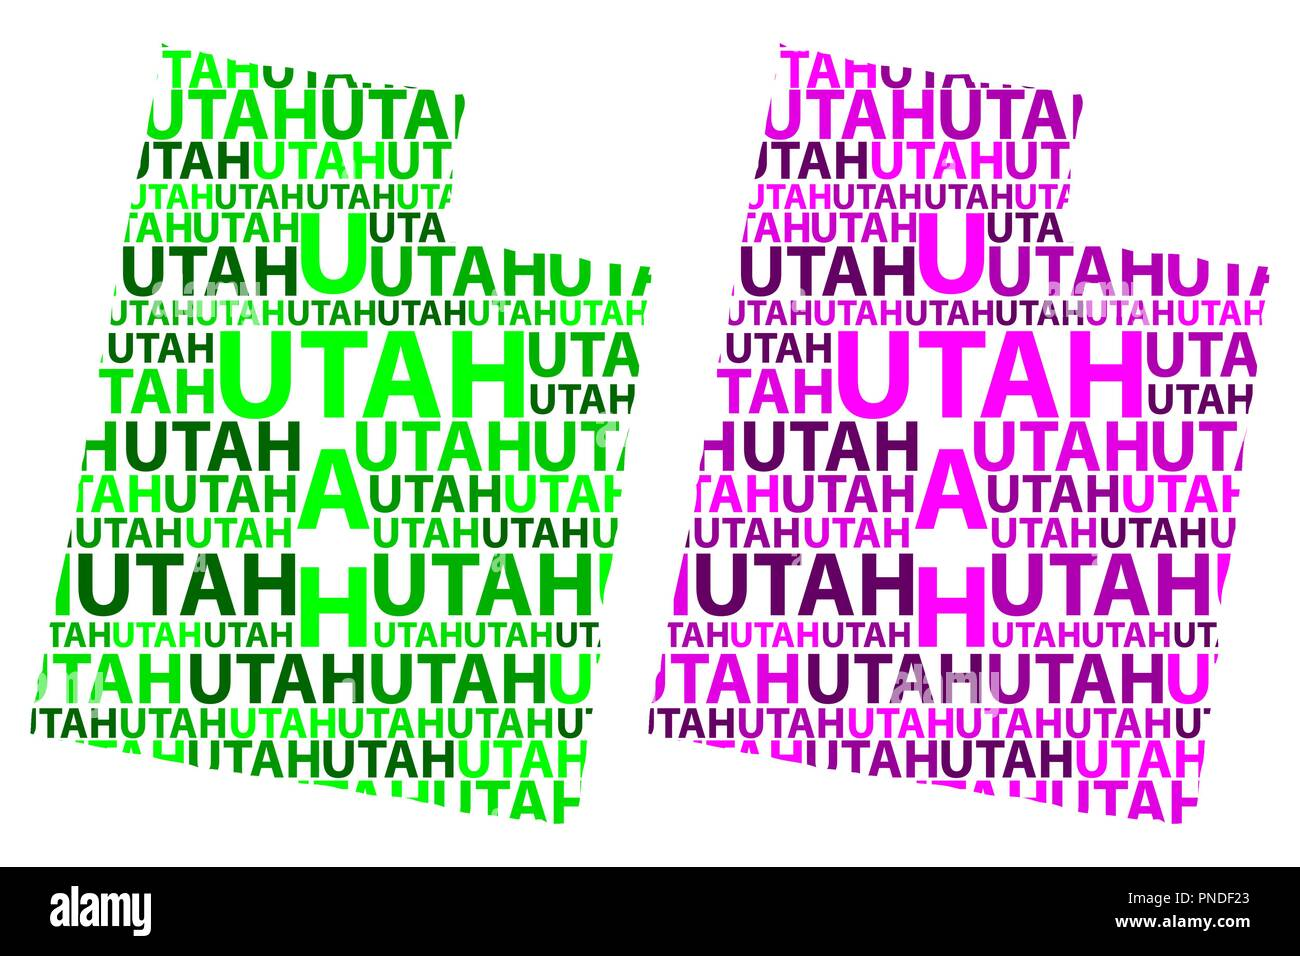 Sketch Utah (United States of America) letter text map, Utah ...